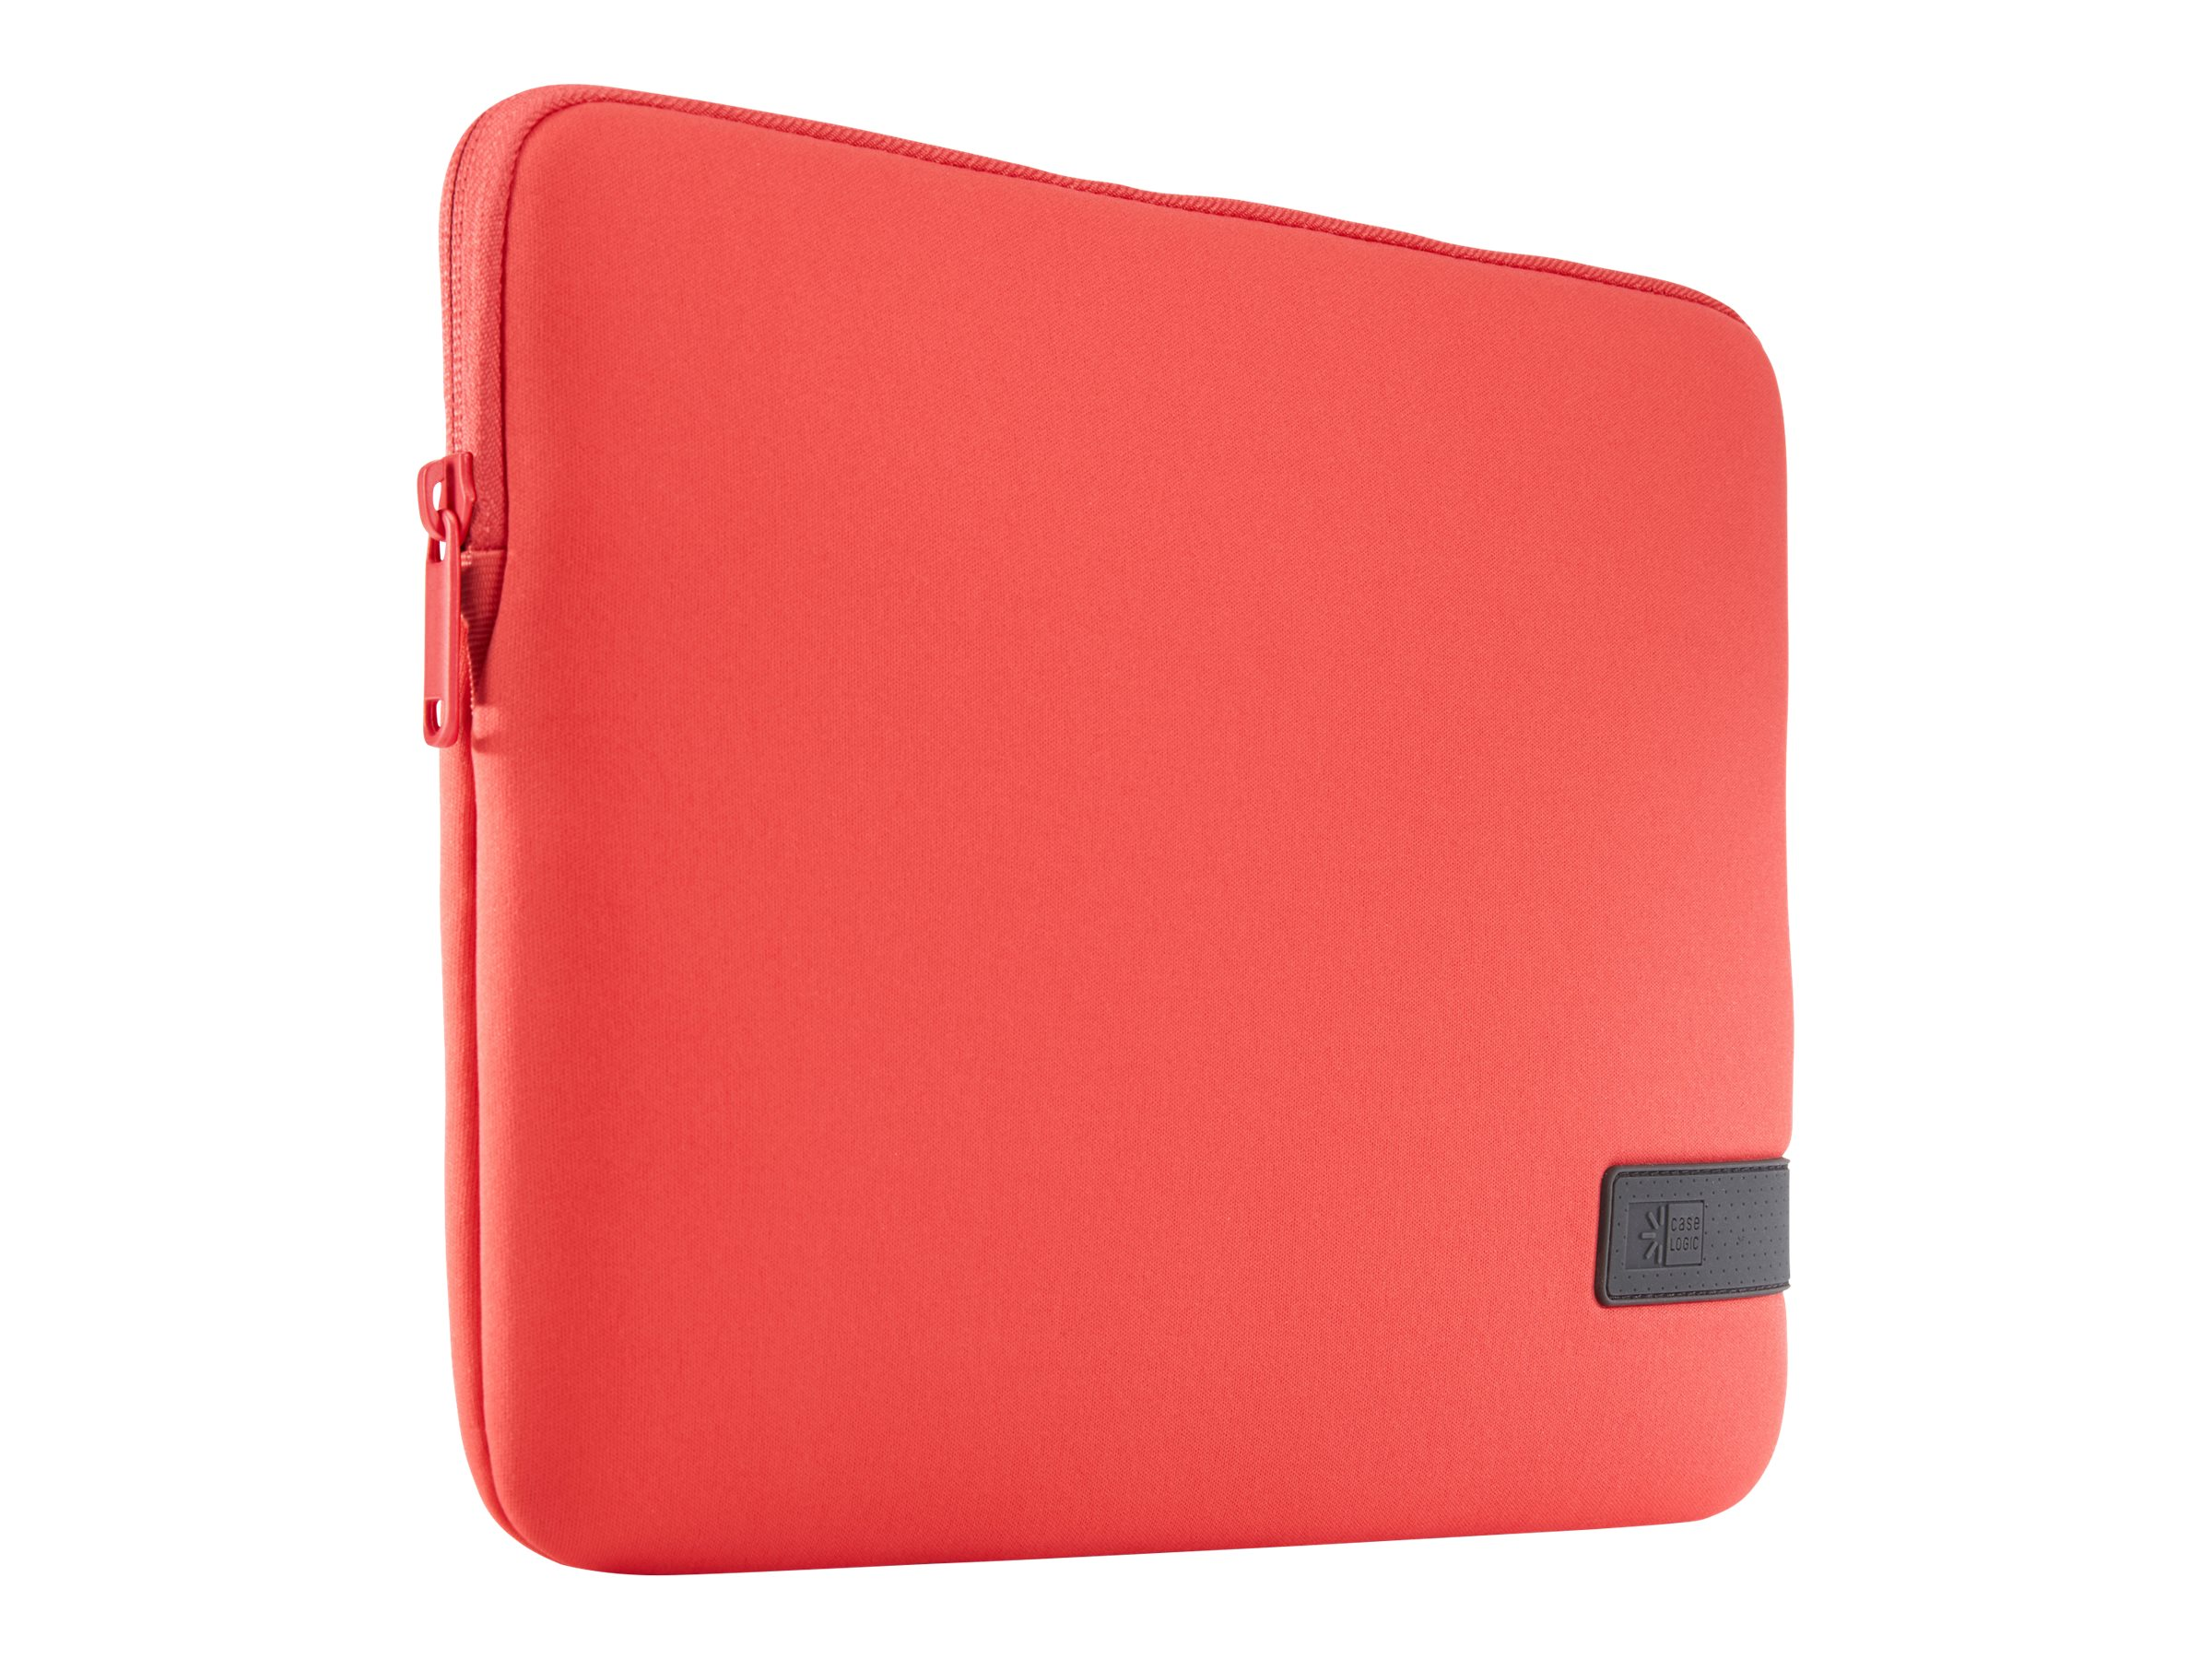 Case Logic Reflect notebook sleeve